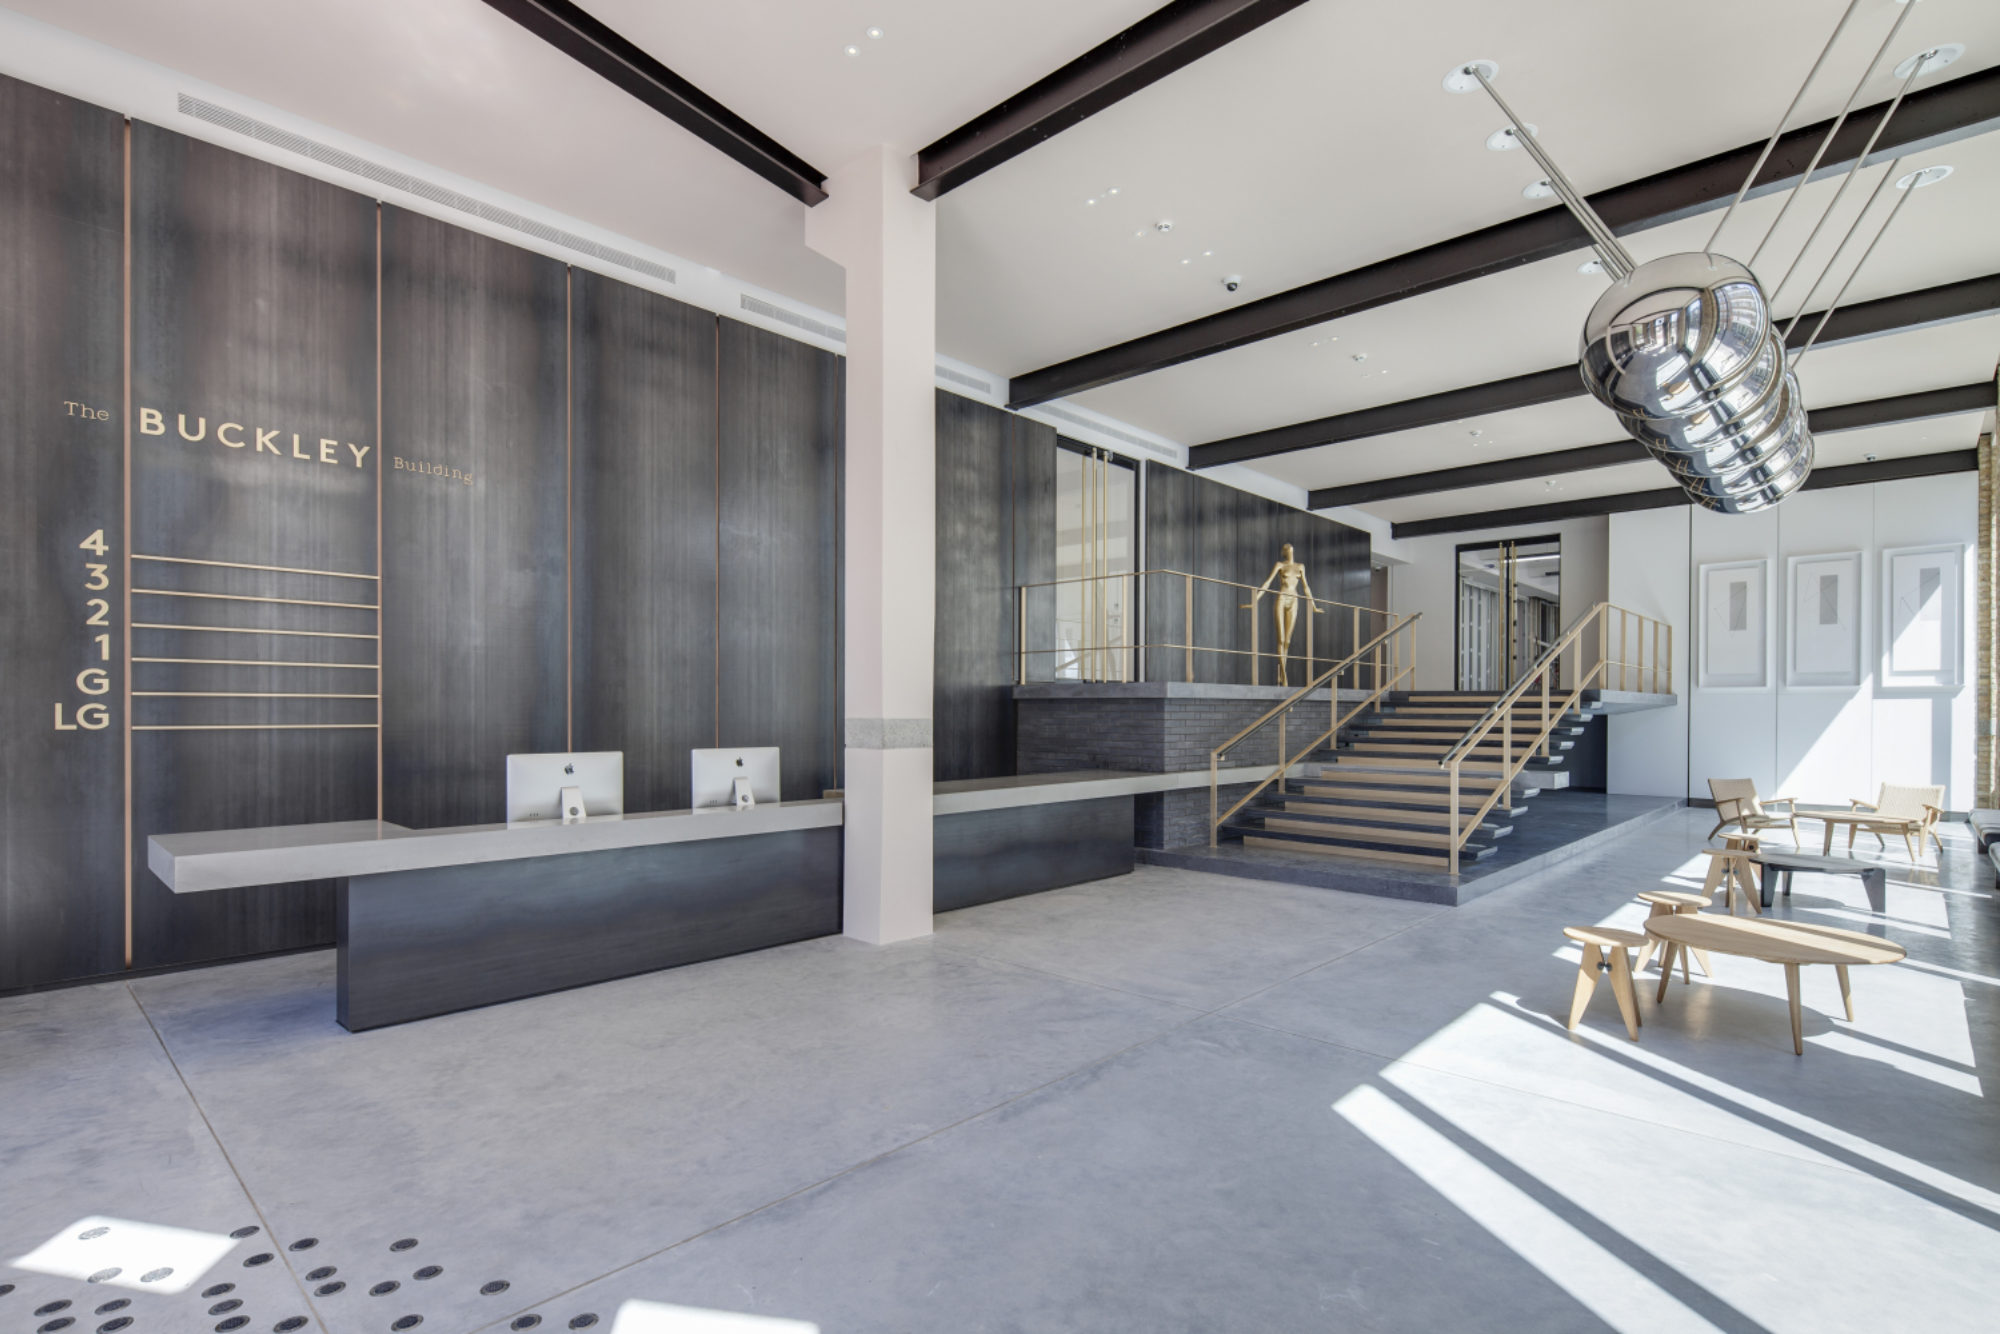 Buckley Building wins the Commercial Interior Award at the 2015 Surface Design Show